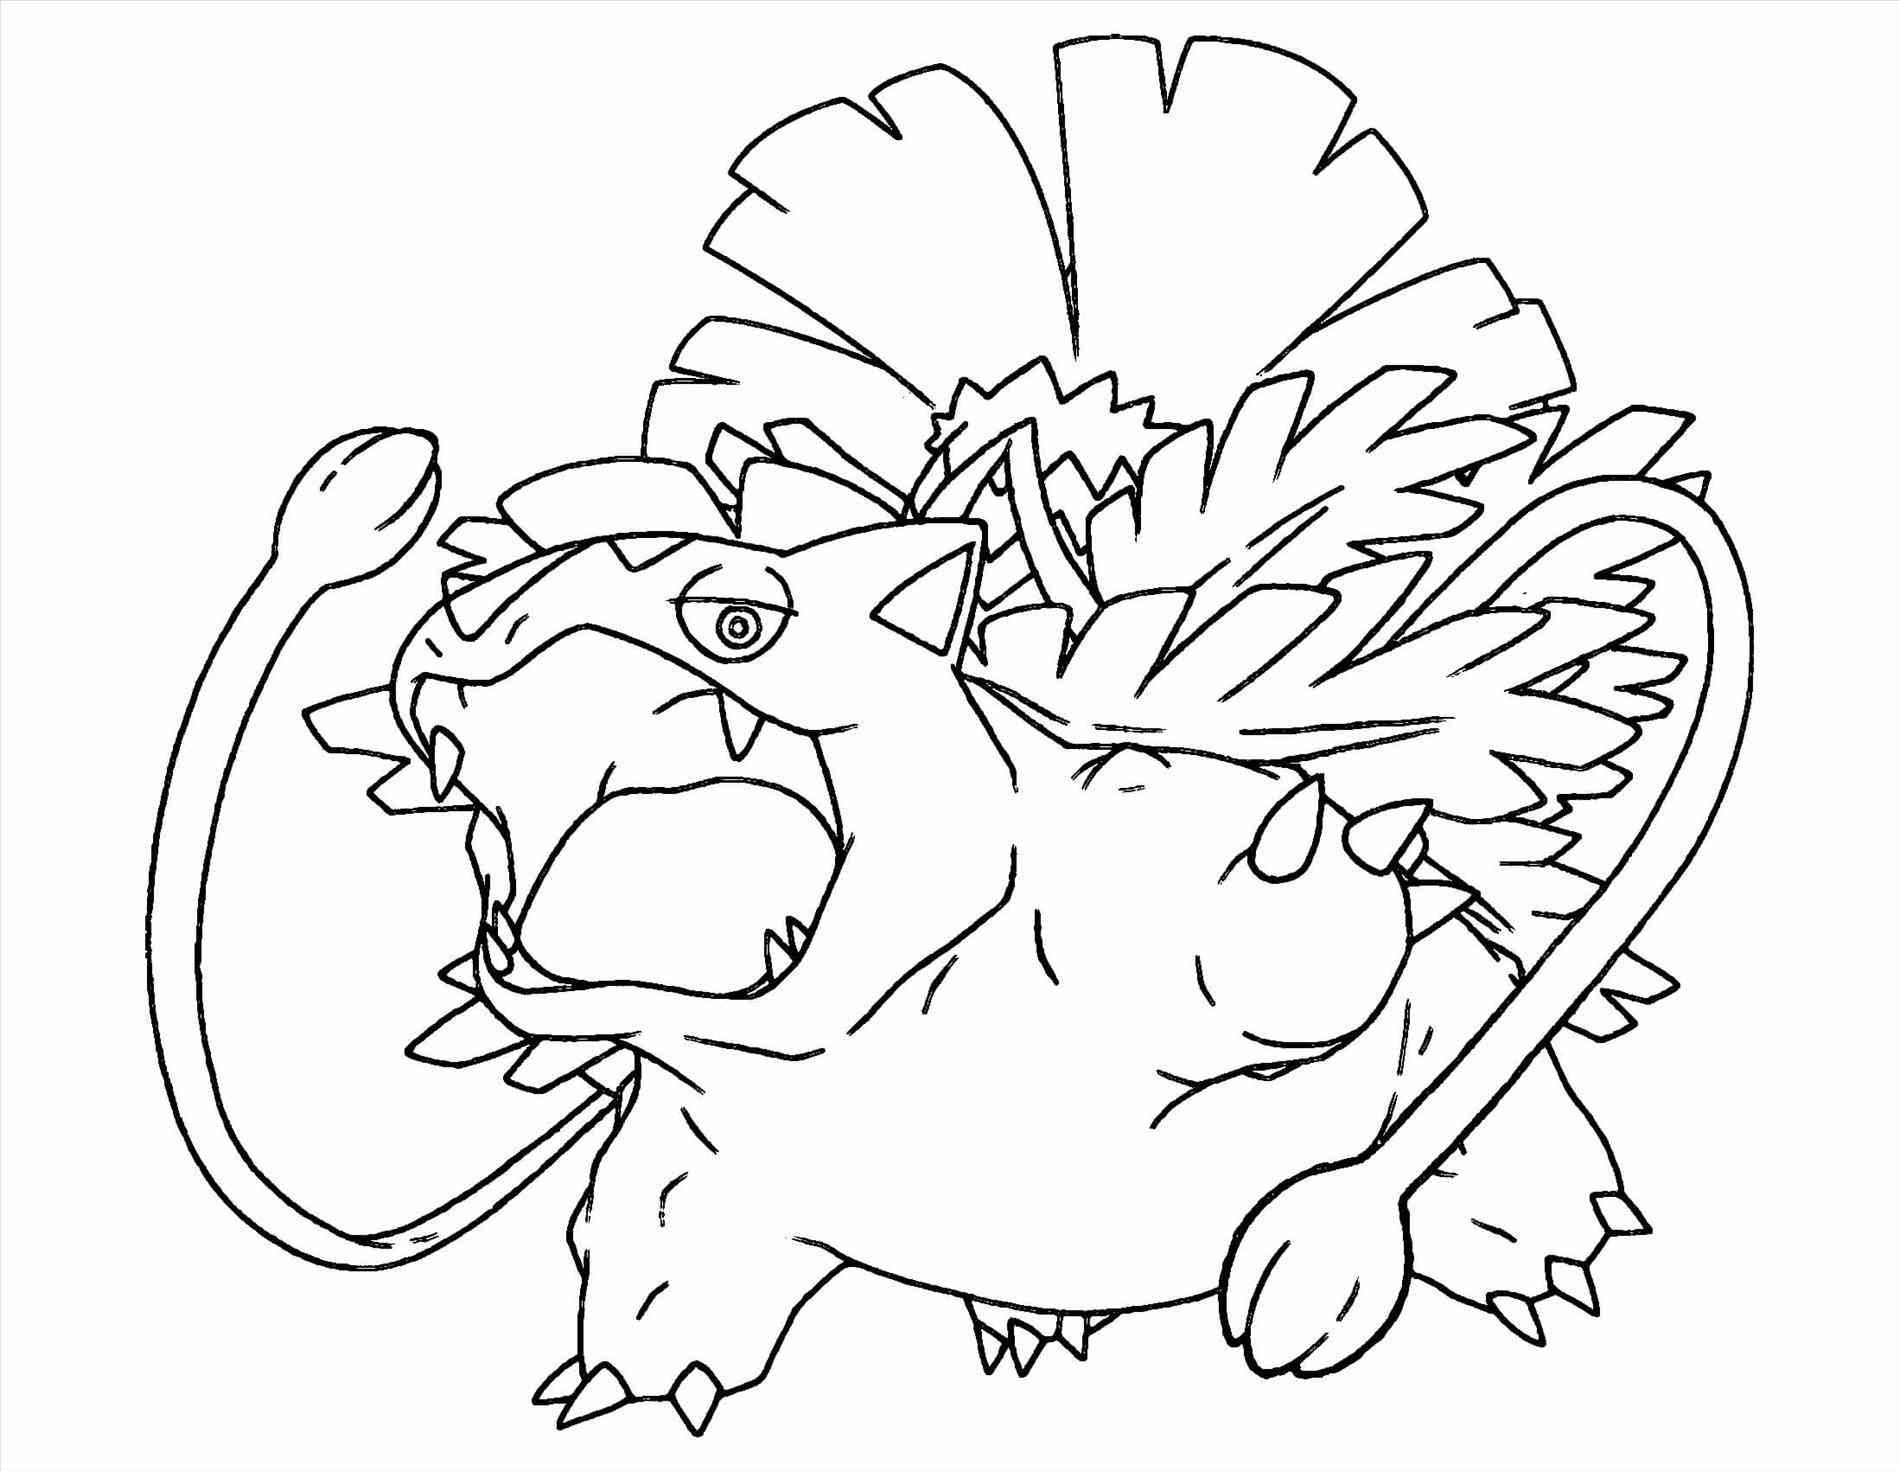 1899x1471 Free Pokemon Charmeleon Coloring Pages Printable Image Versions S